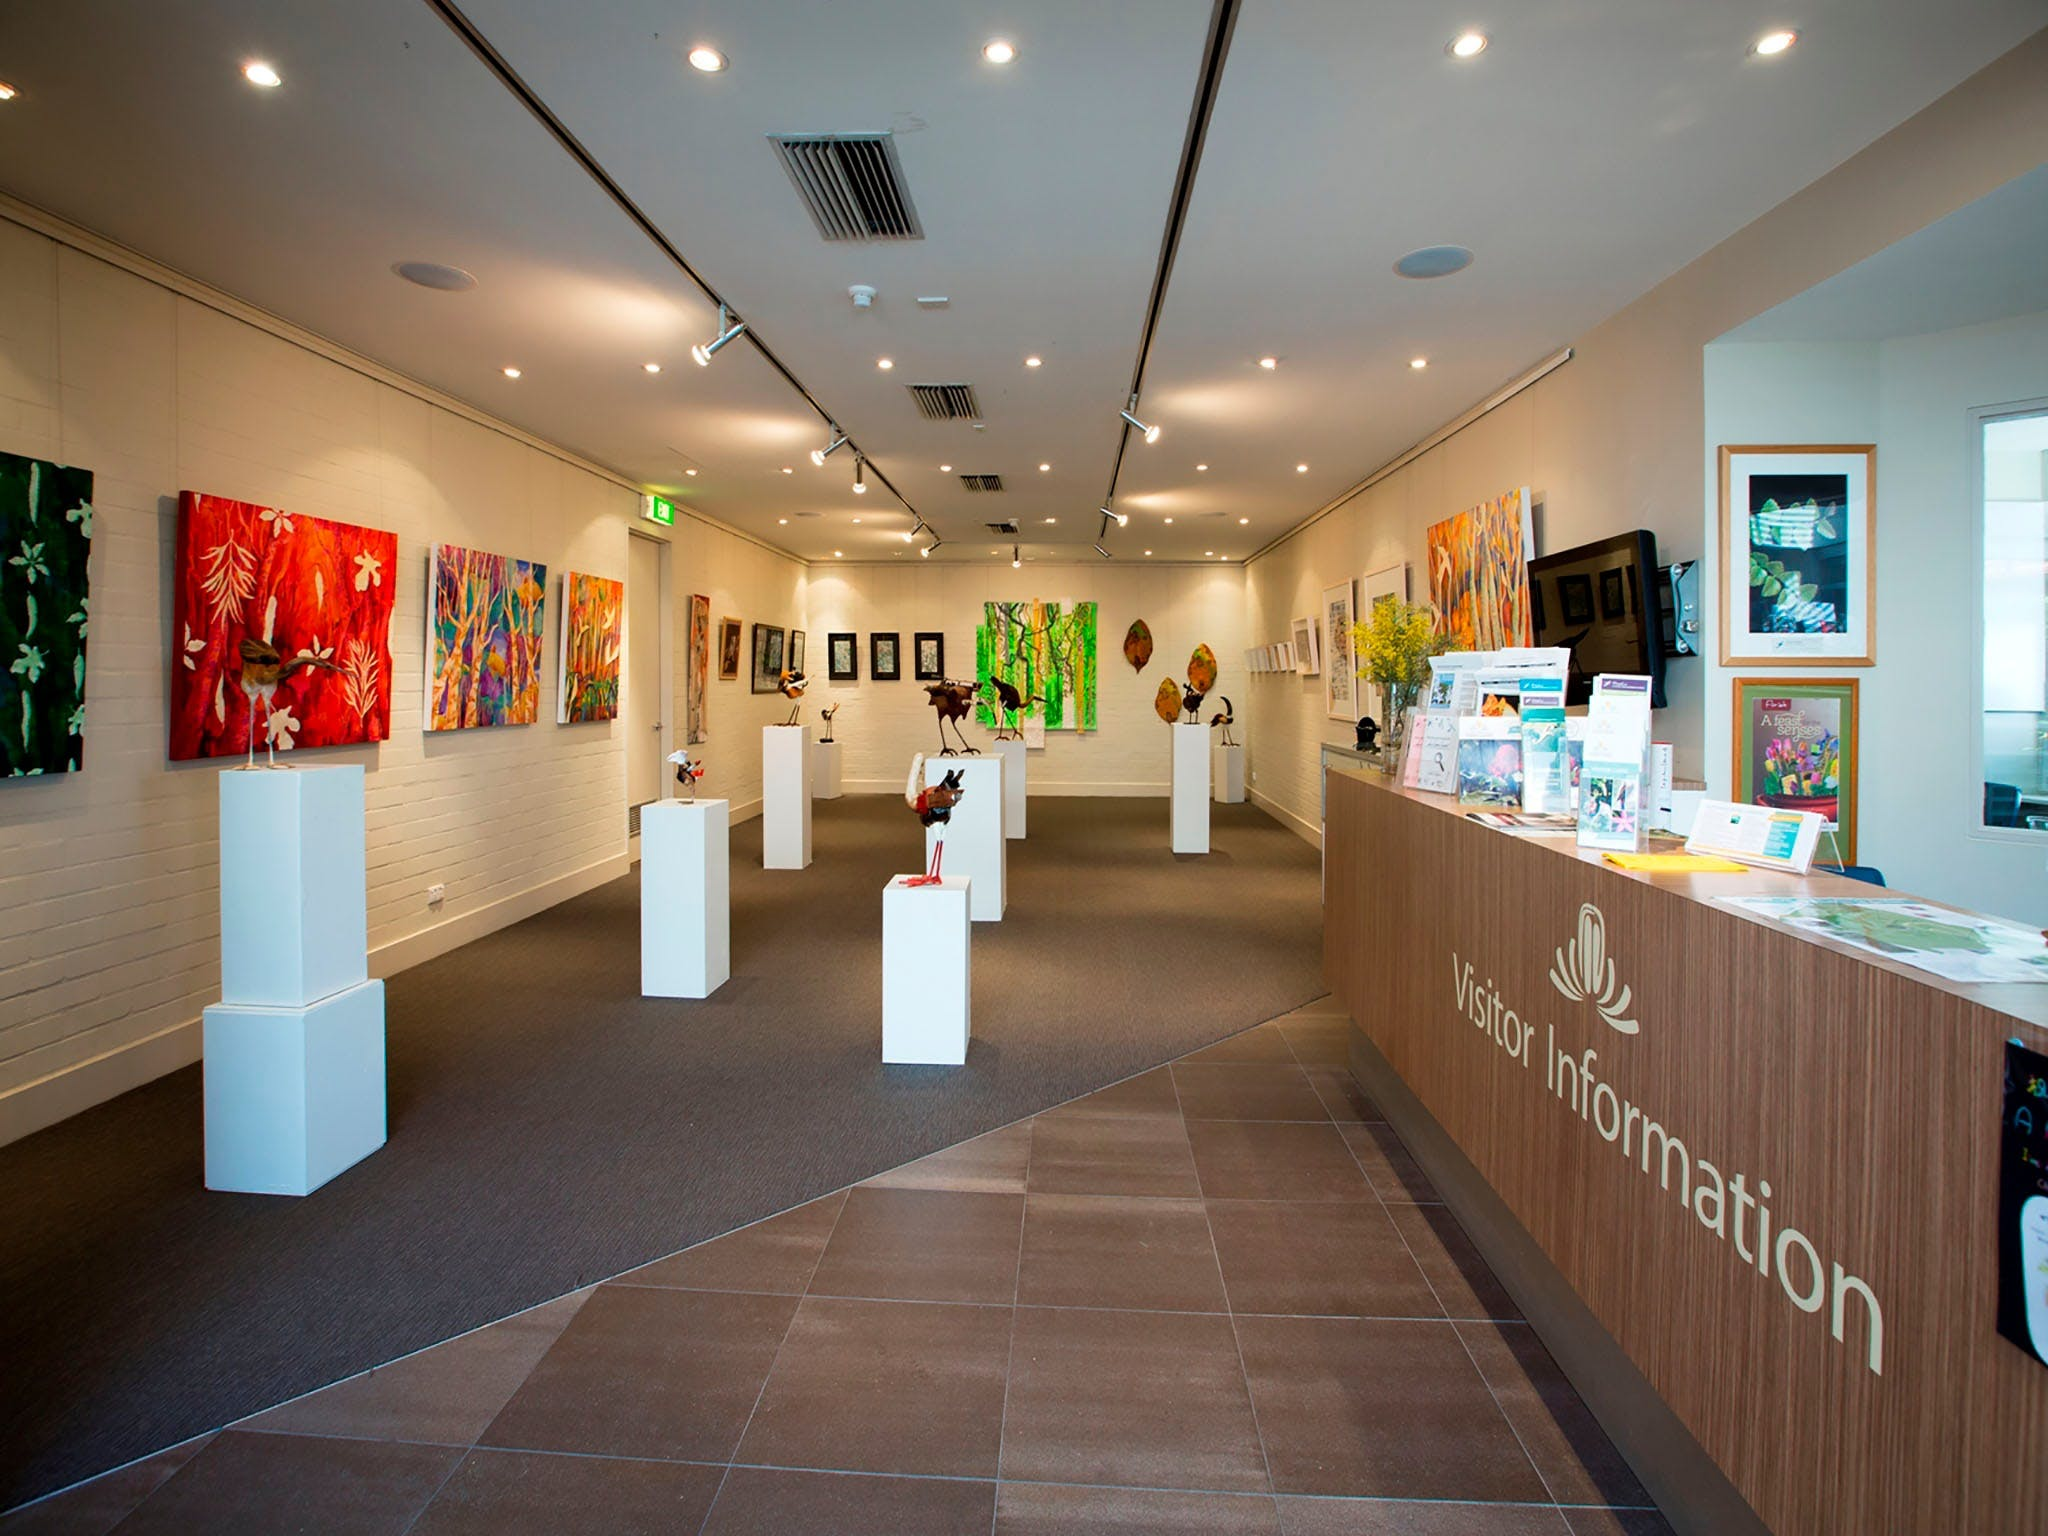 Australian National Botanic Gardens Visitor Centre Gallery - Attractions Perth